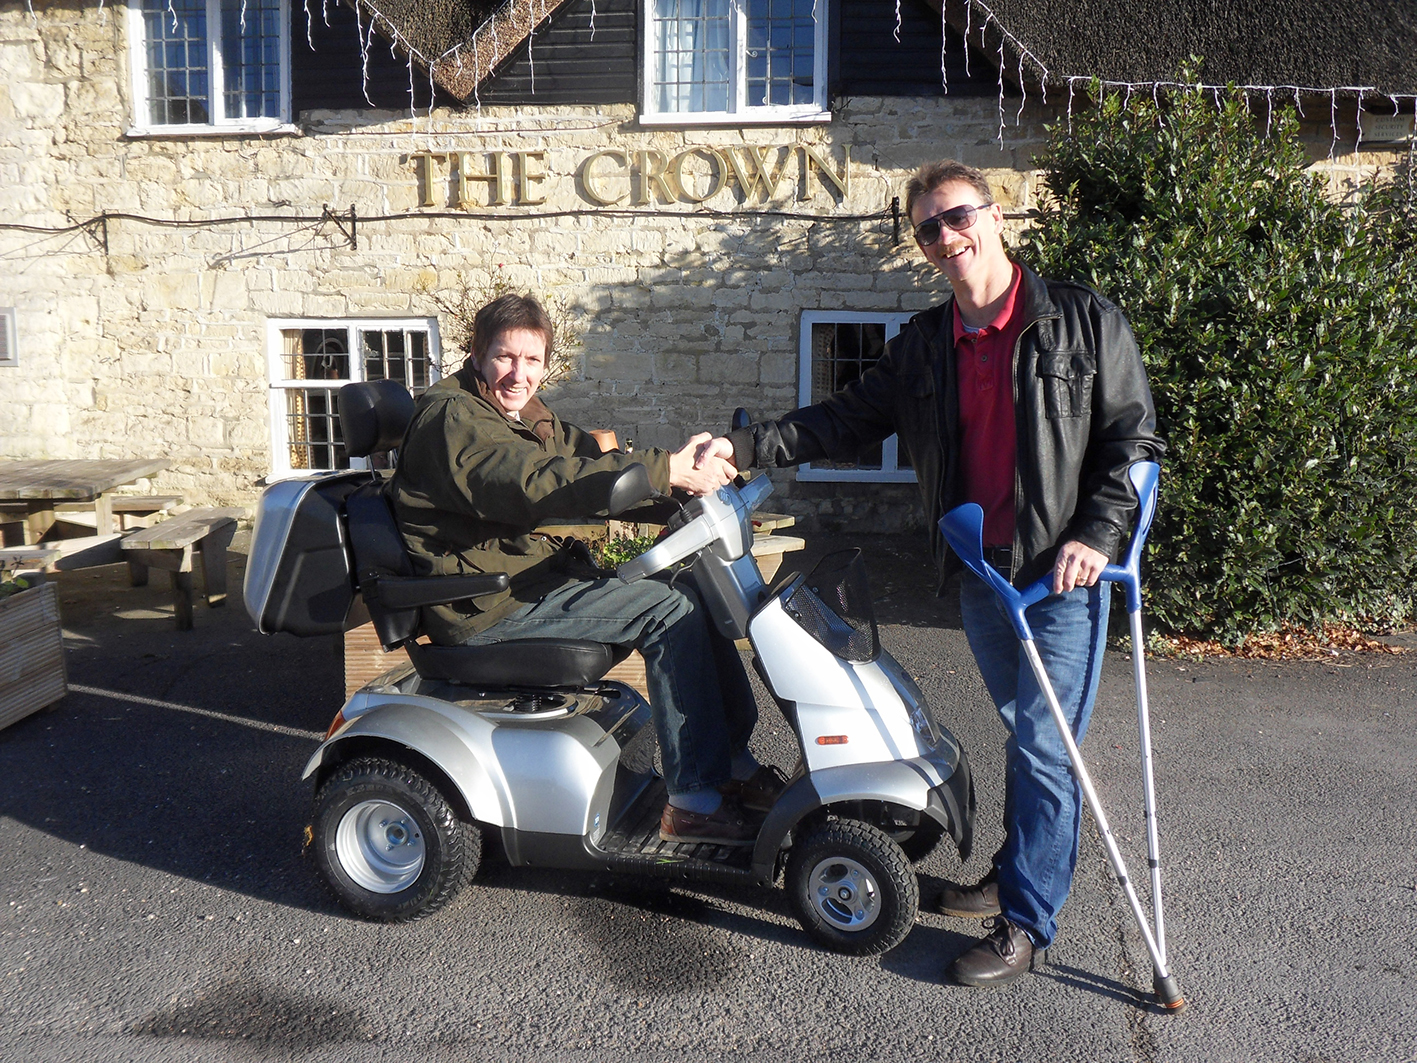 Dorset man regains freedom with community donated TGA mobility scooter